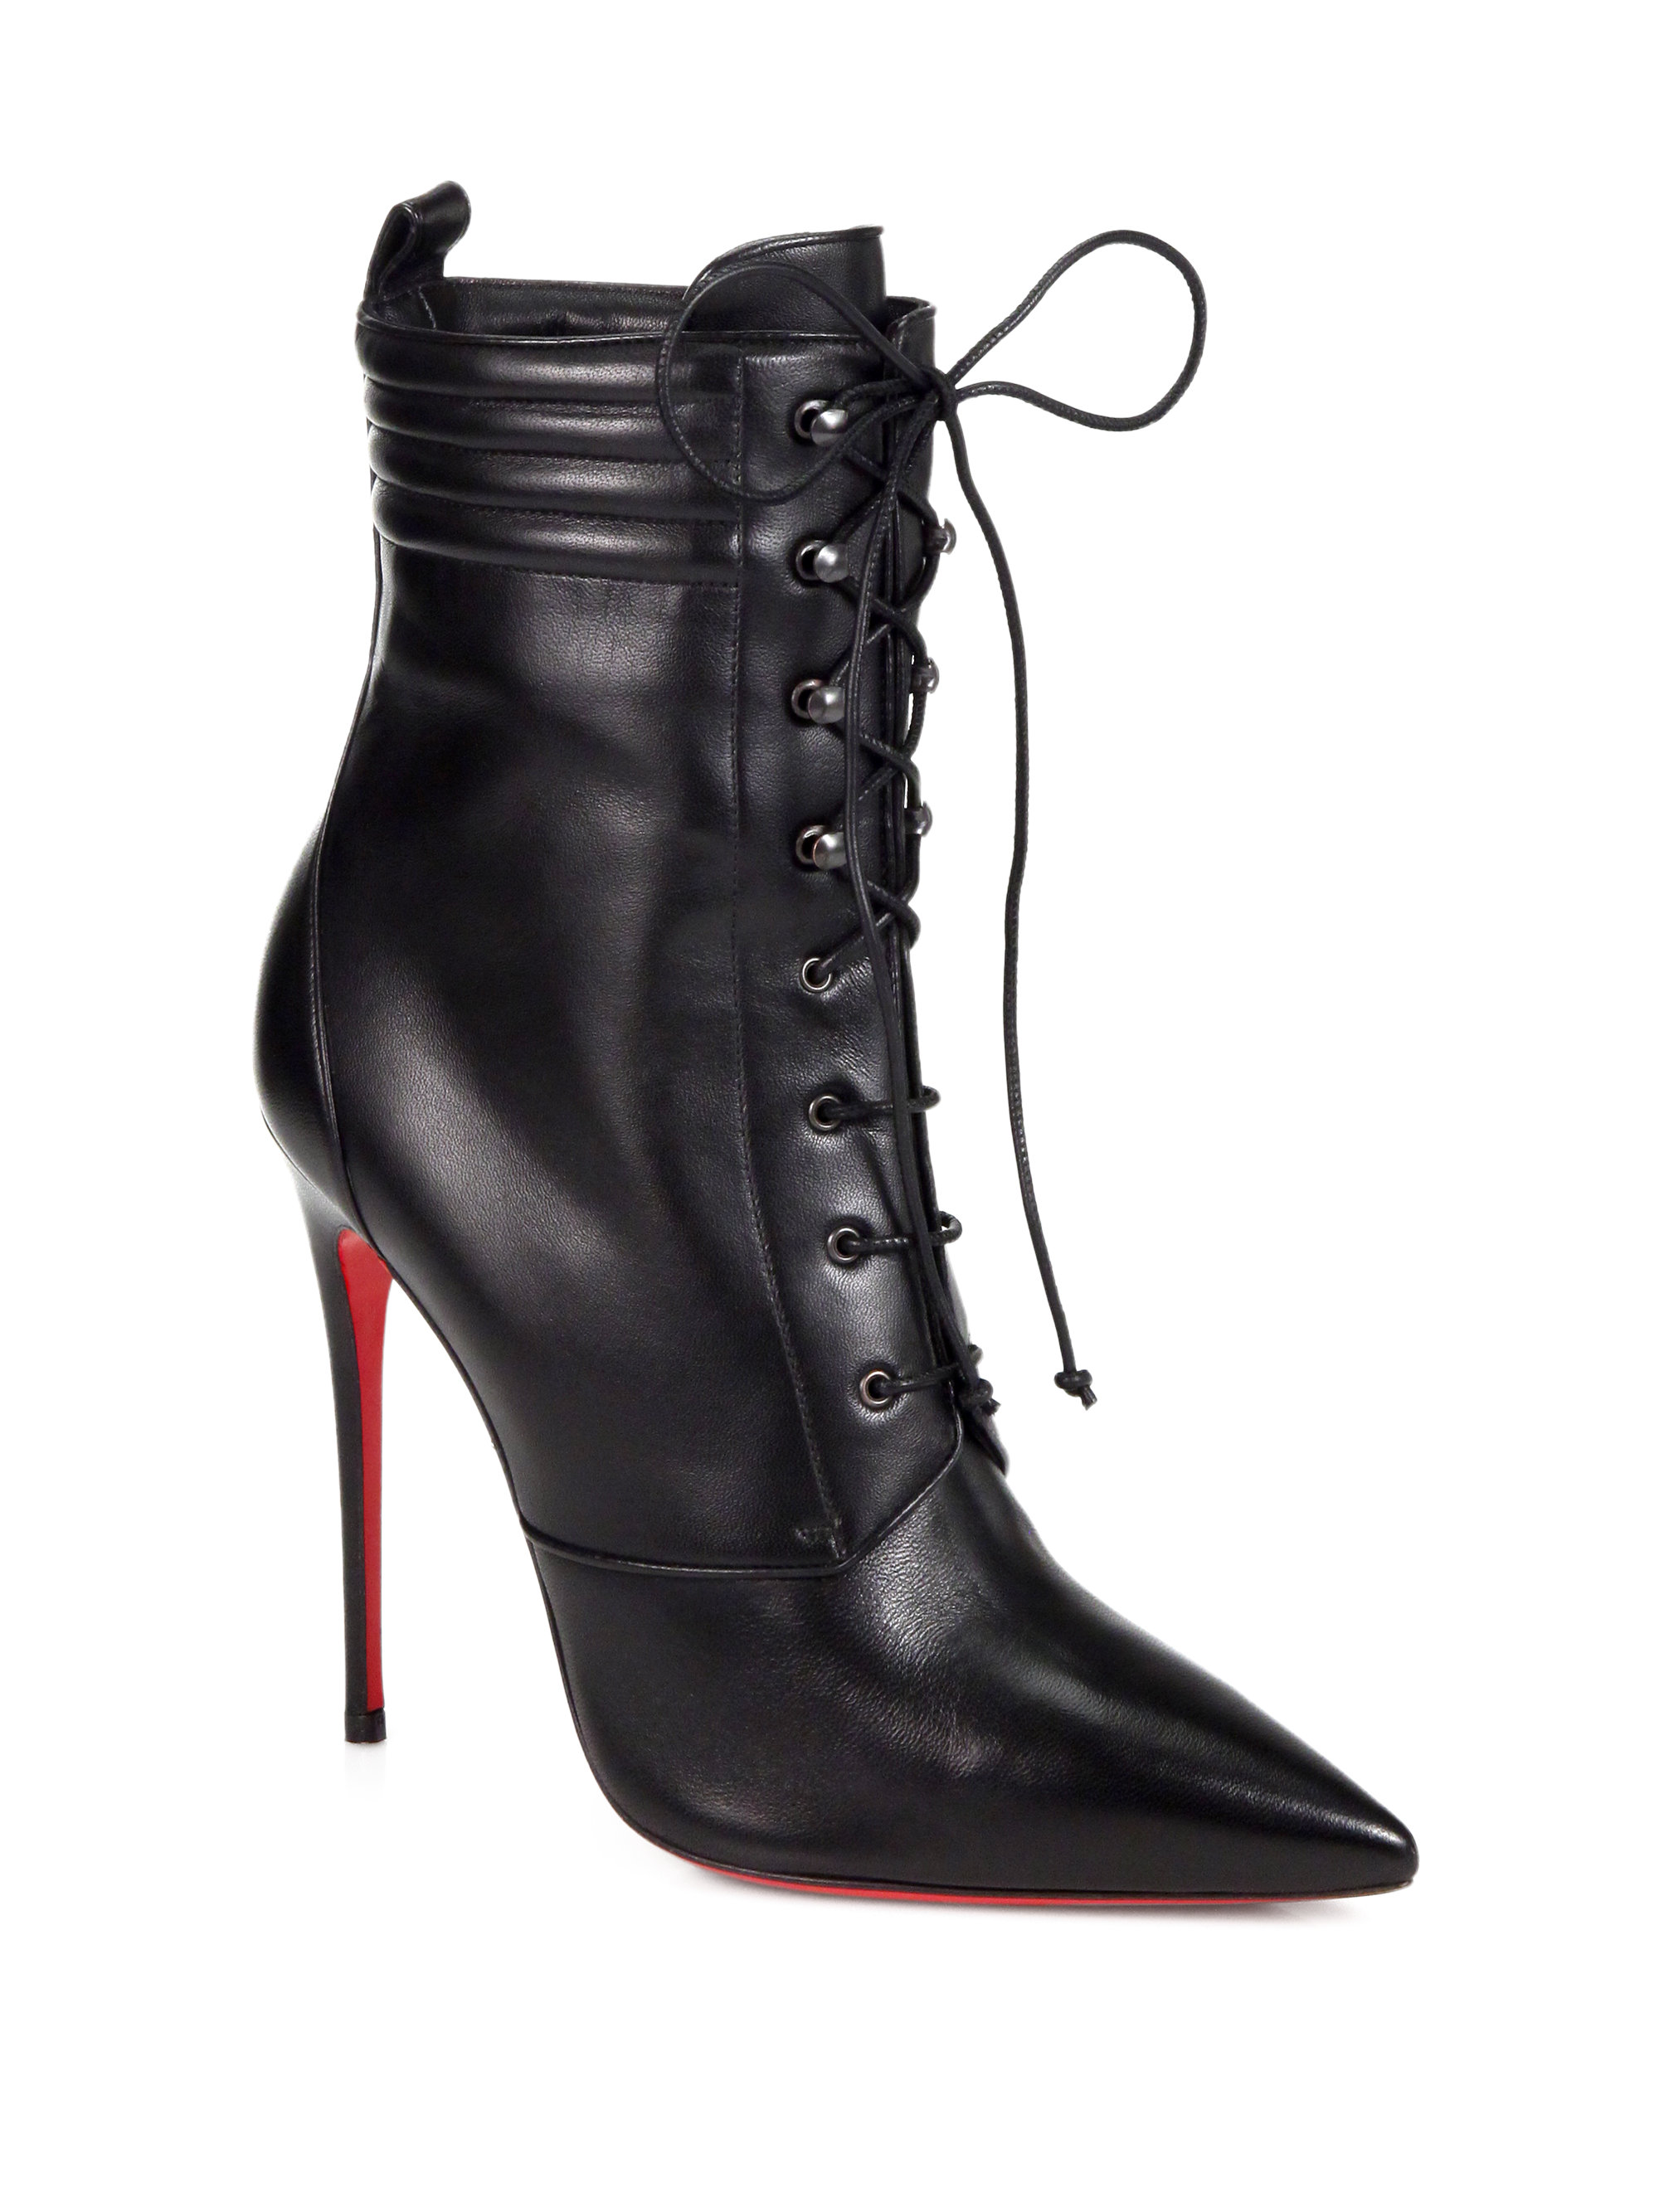 Christian louboutin Mado Leather Lace up Ankle Boots in Black | Lyst